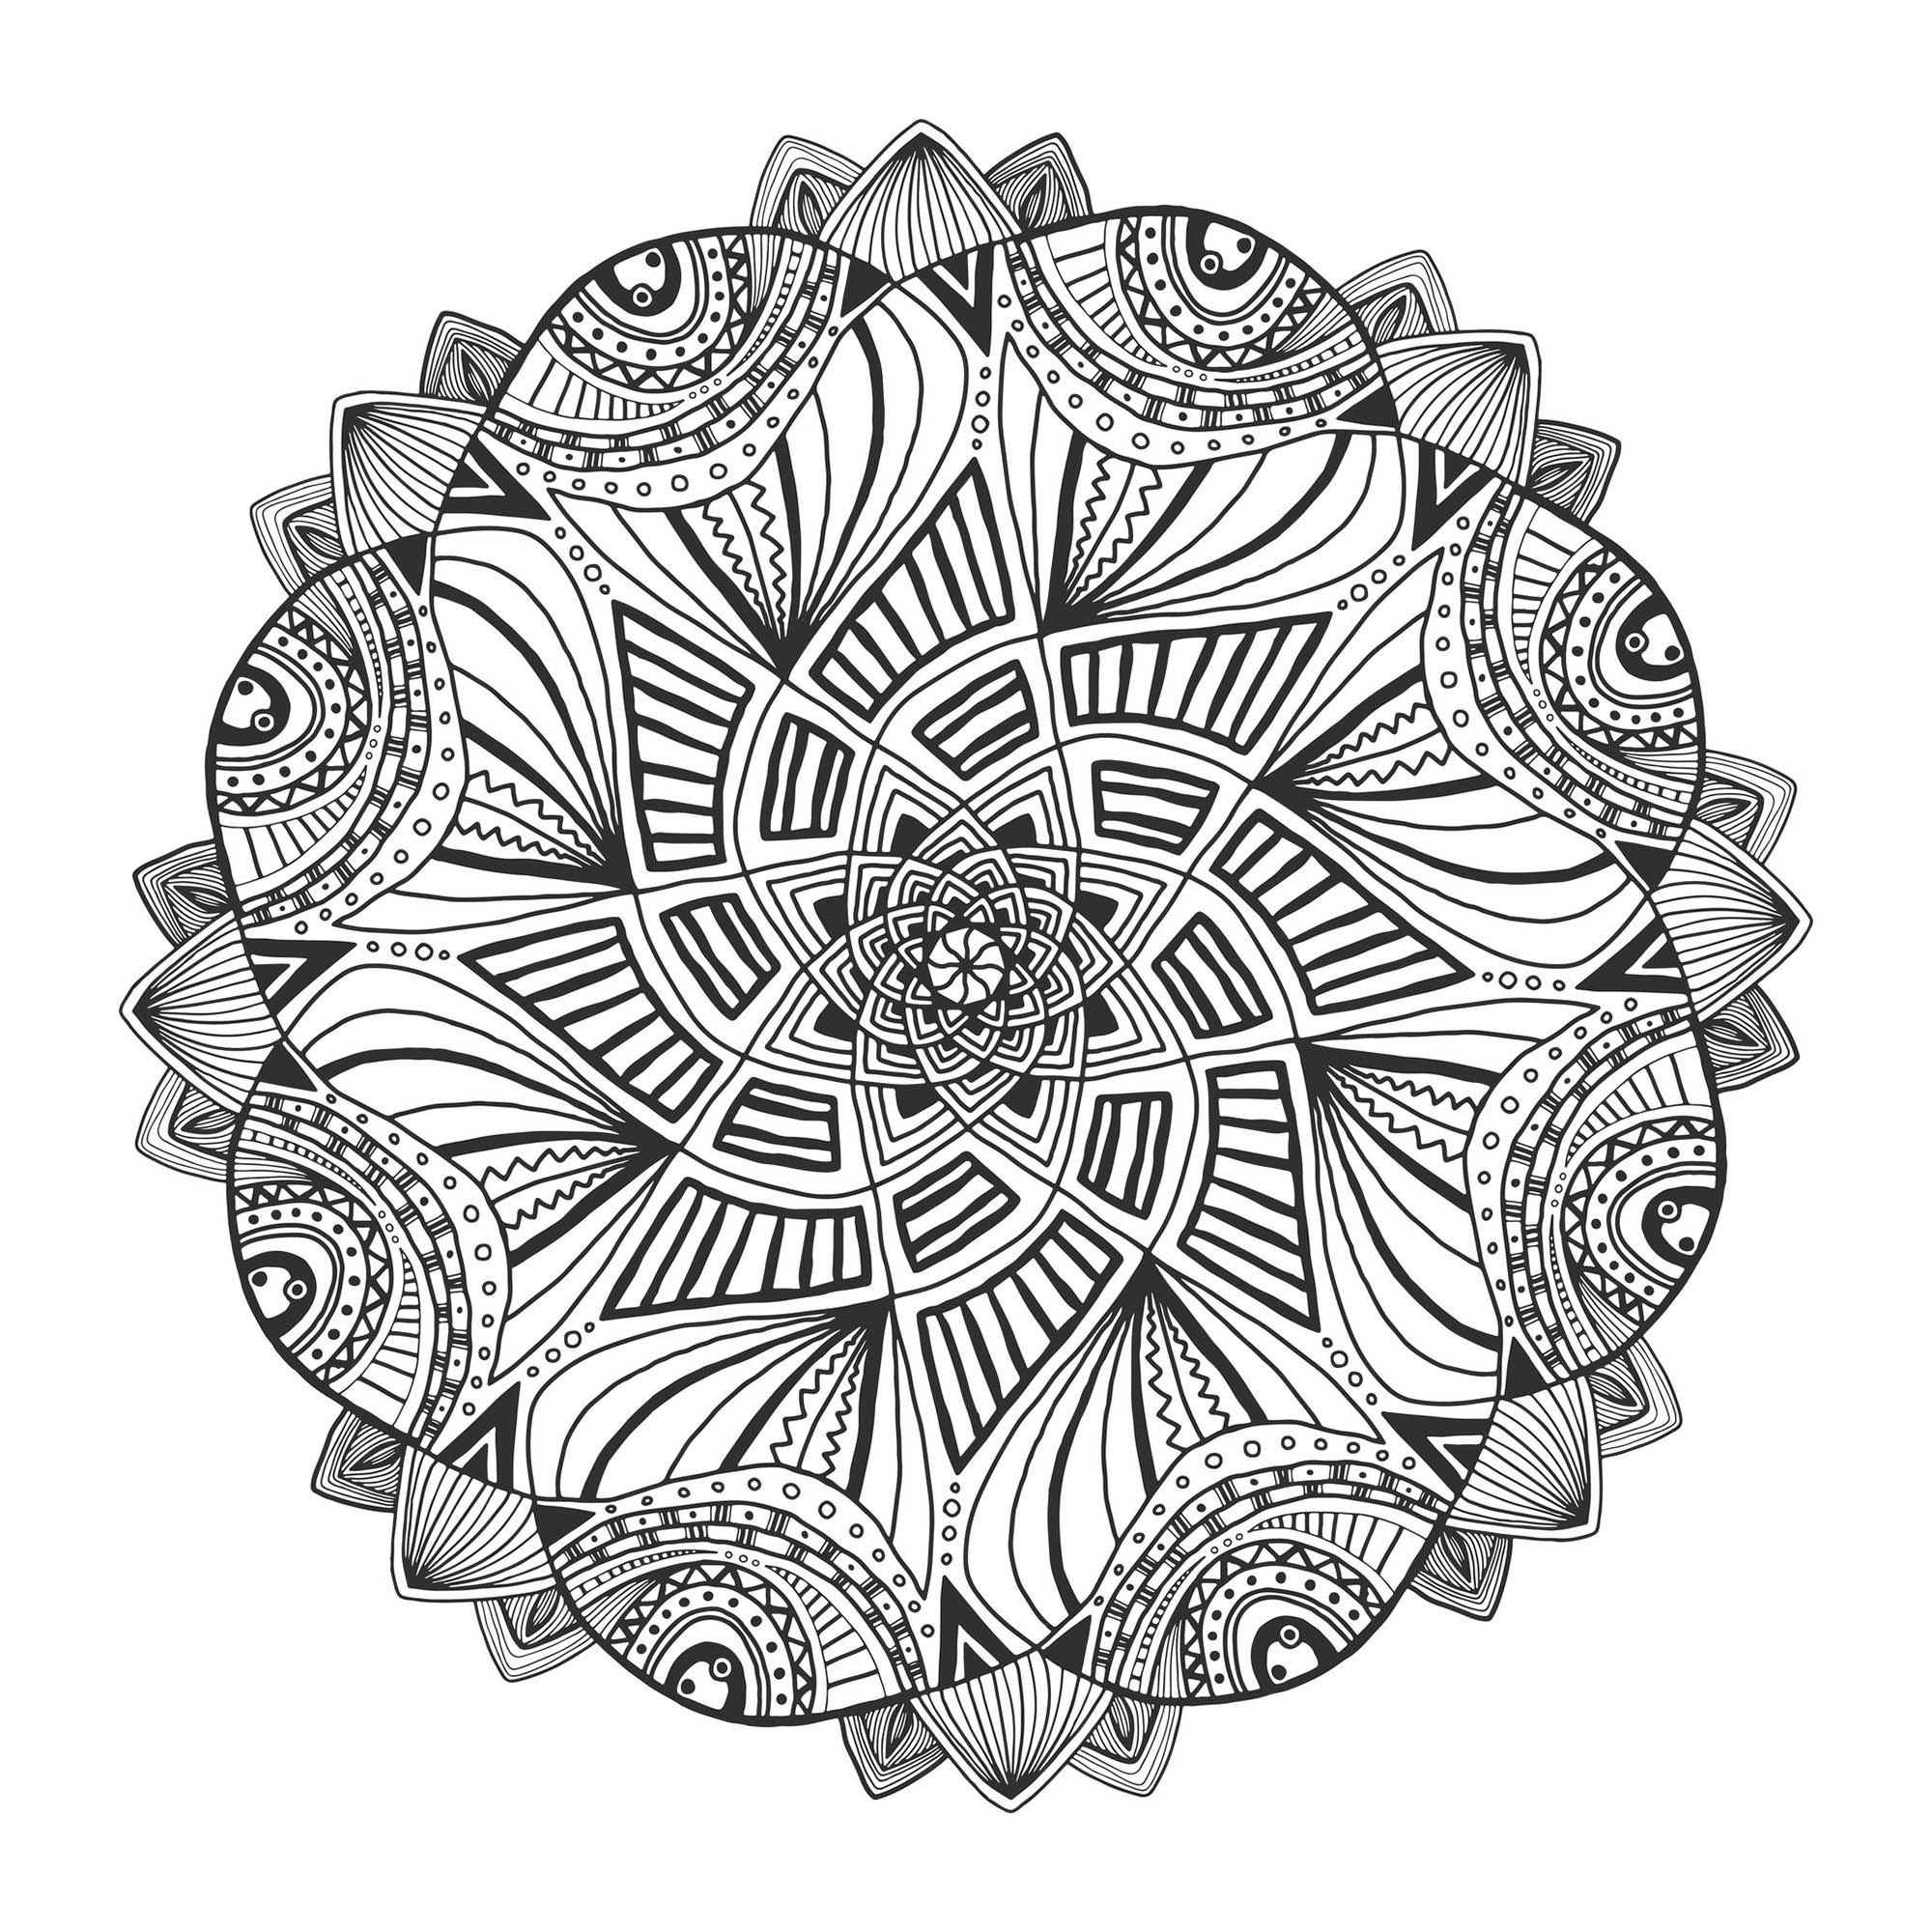 If you are ready to spend long minutes of relaxation, get ready to color this complex and really hypnotic Mandala ... You can use few or many colors, it's like you prefer. You must clear your mind and allow yourself to forget all your worries and responsibilities.